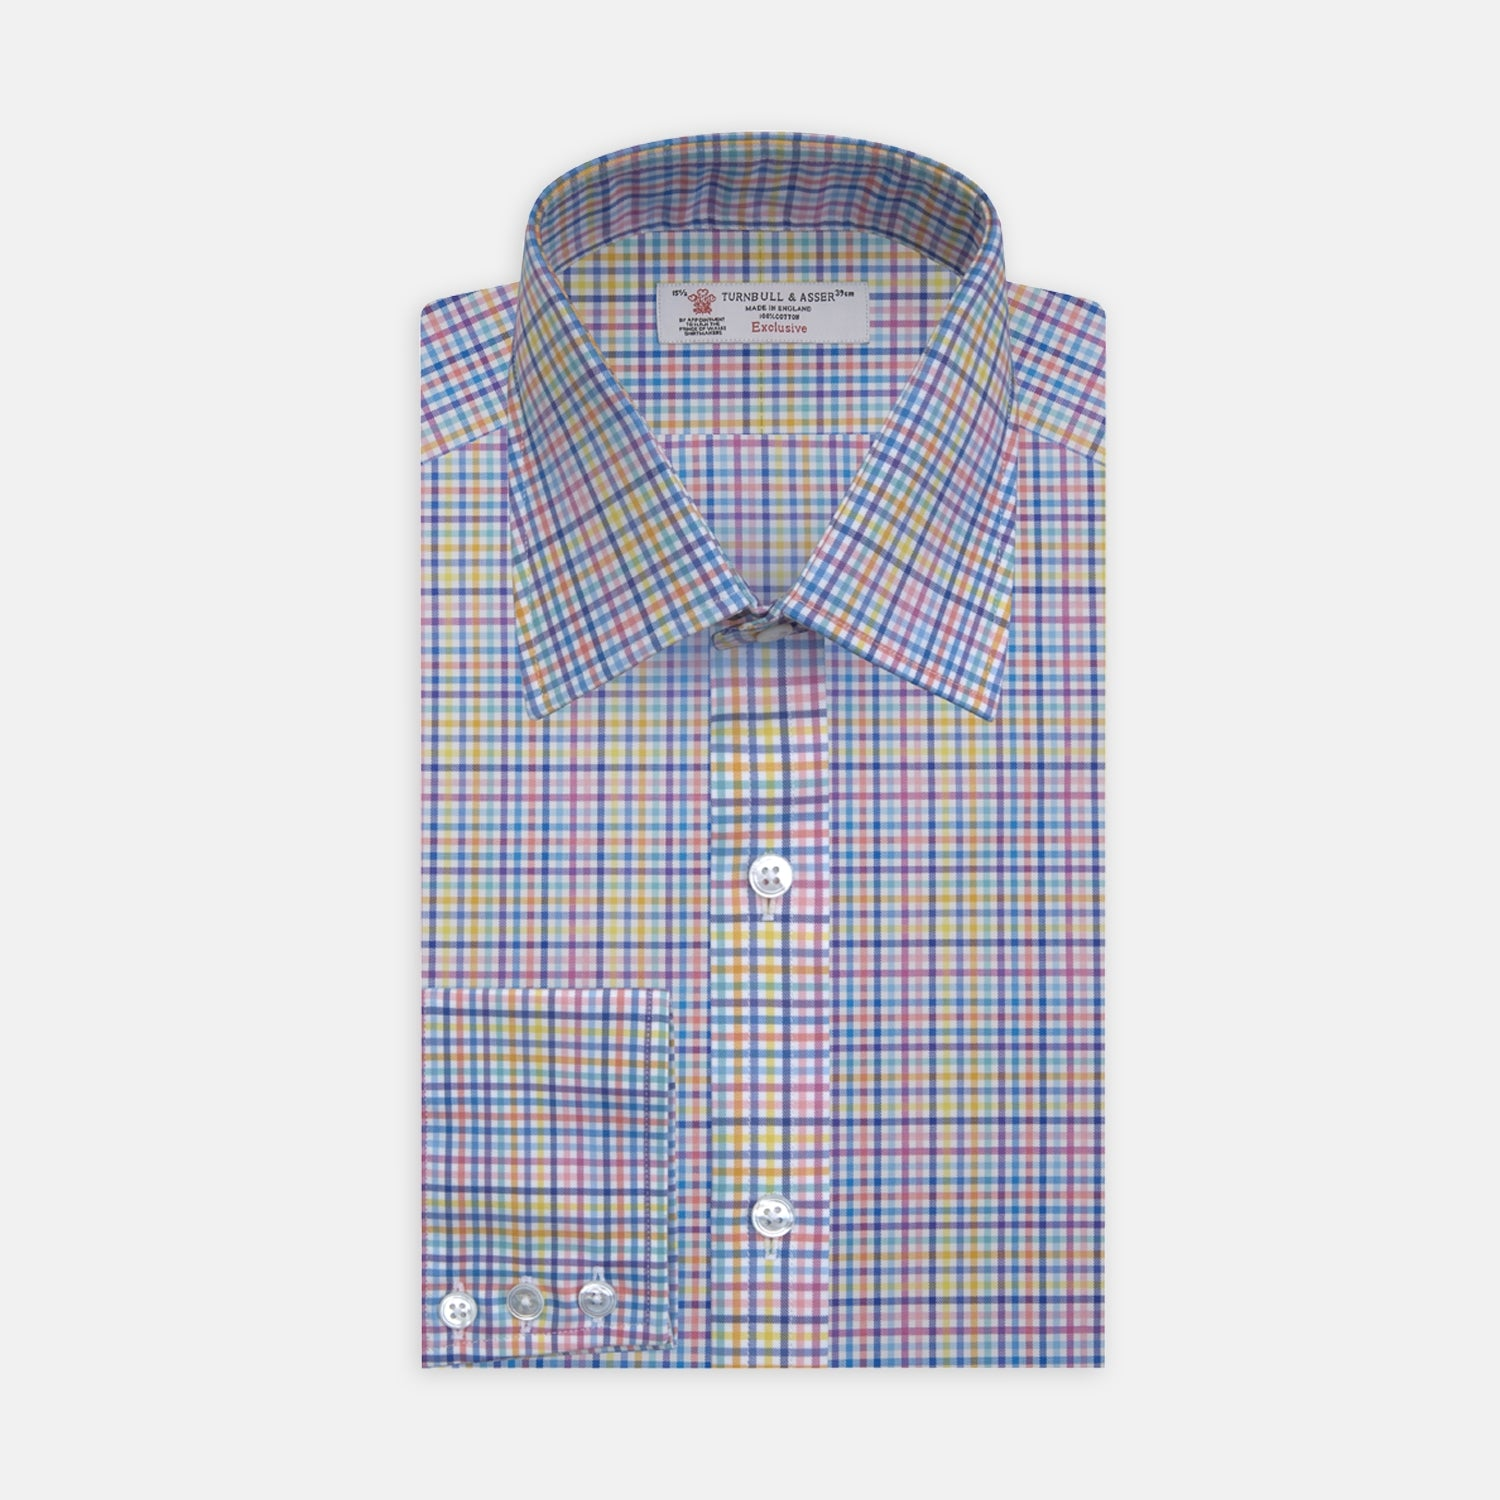 Multicoloured Graph Check Shirt with T&A Collar and 3-Button Cuffs - 15.0 from Turnbull & Asser